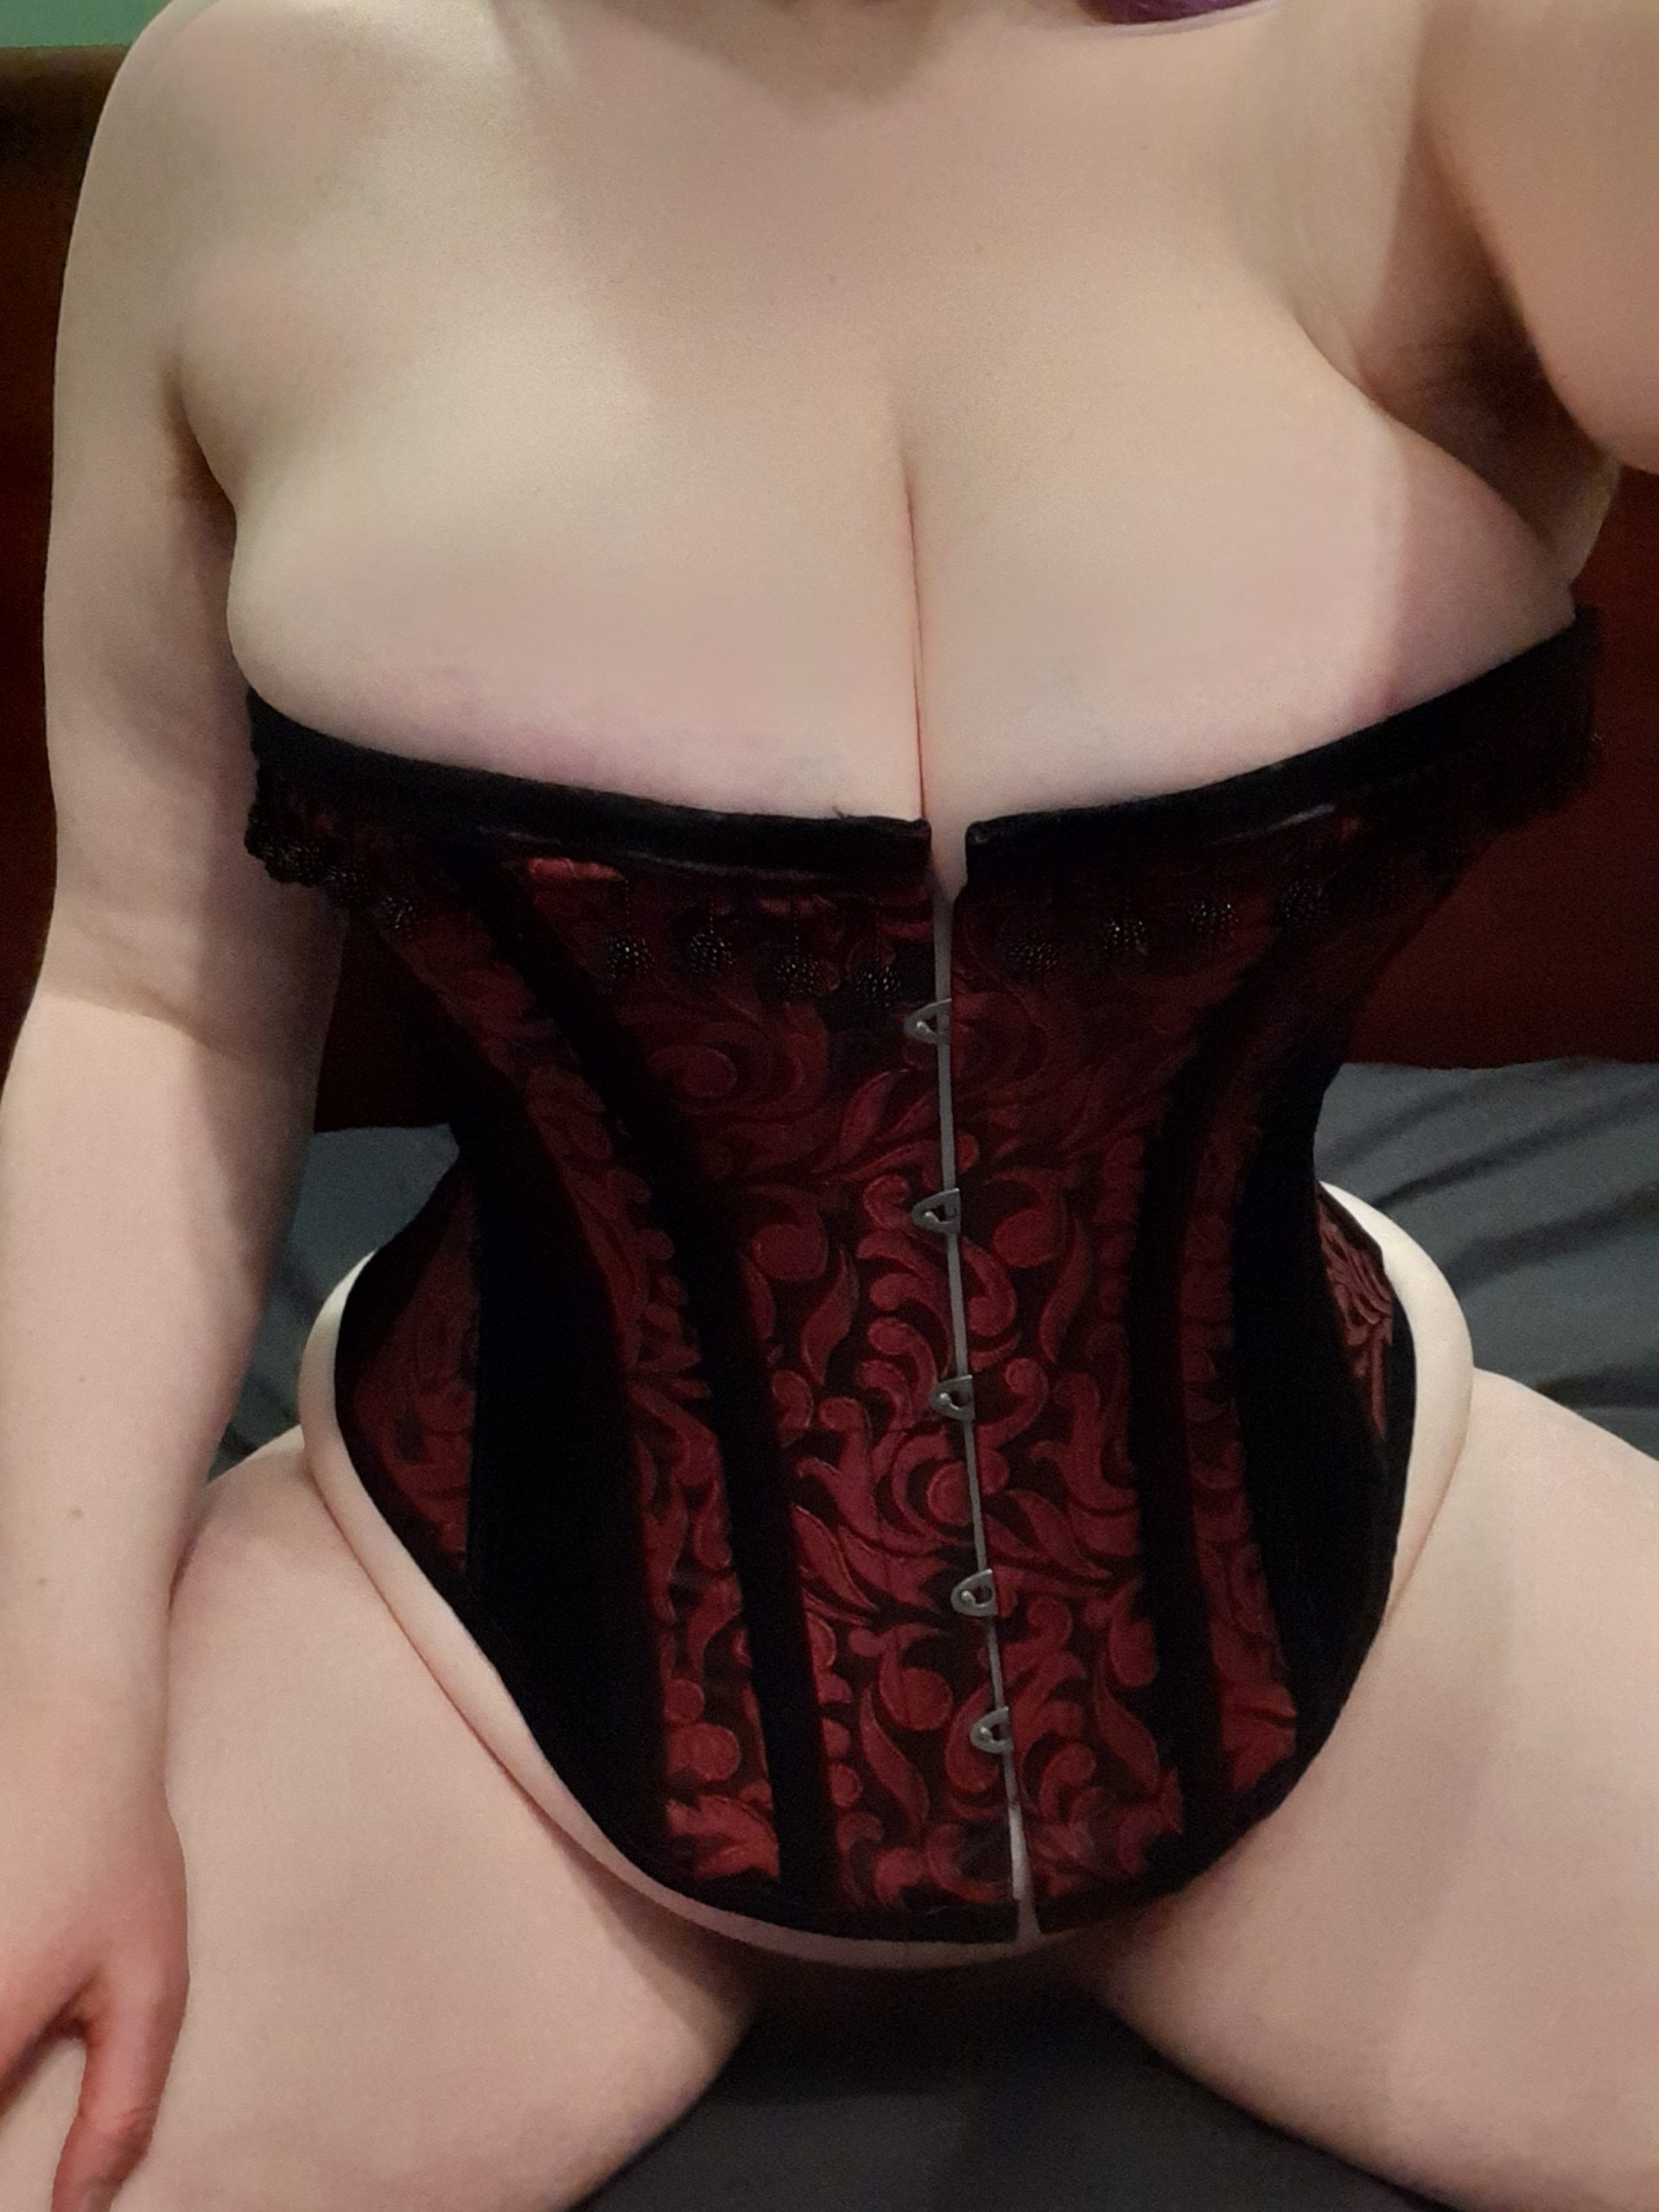 Woman posing on a bed in a corset